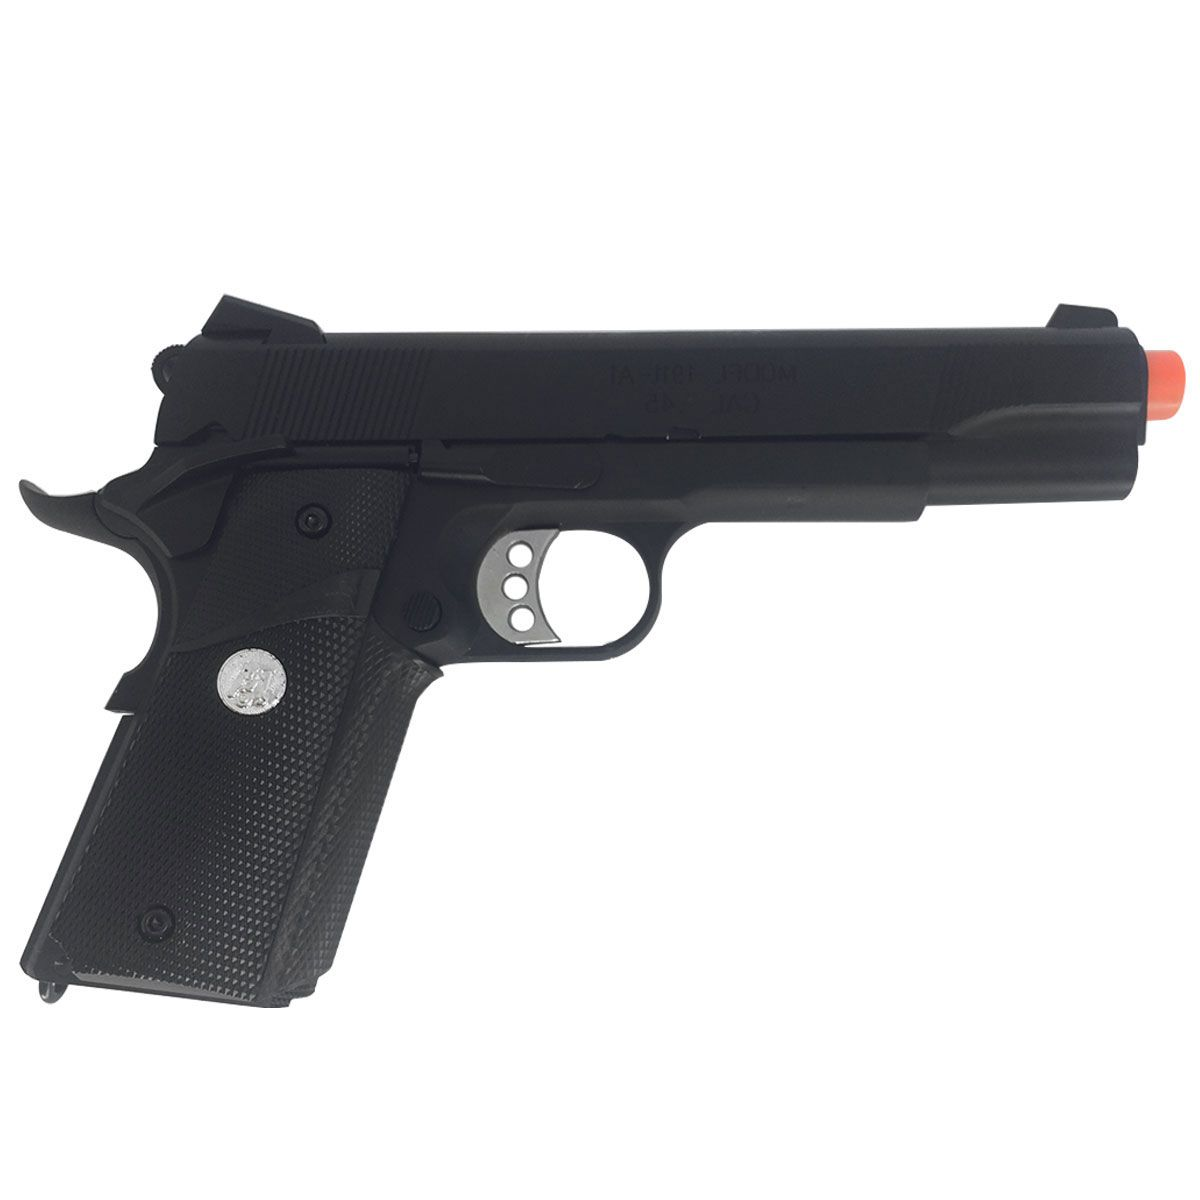 Pistola de Airsoft Army Armament 1911 R27 Full Metal GBB 6m